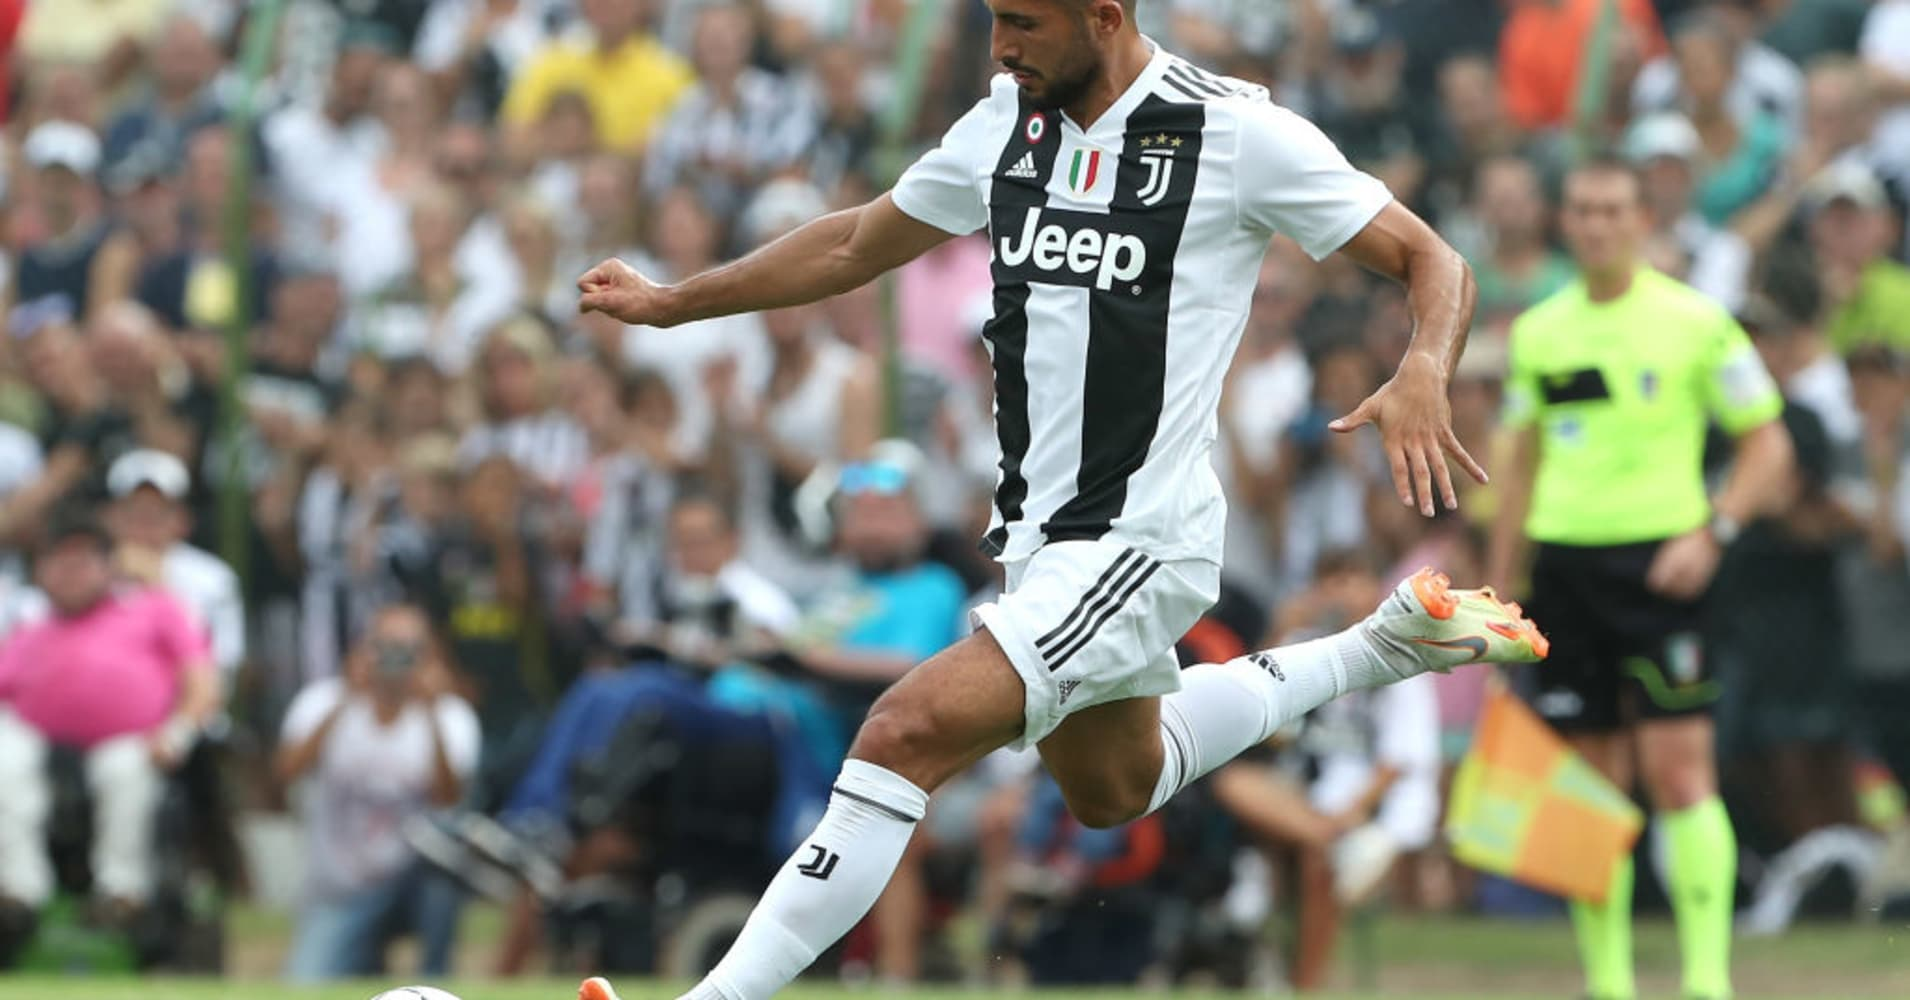 Italian soccer giant Juventus switches to an online channel in a bid to grab a global fan base